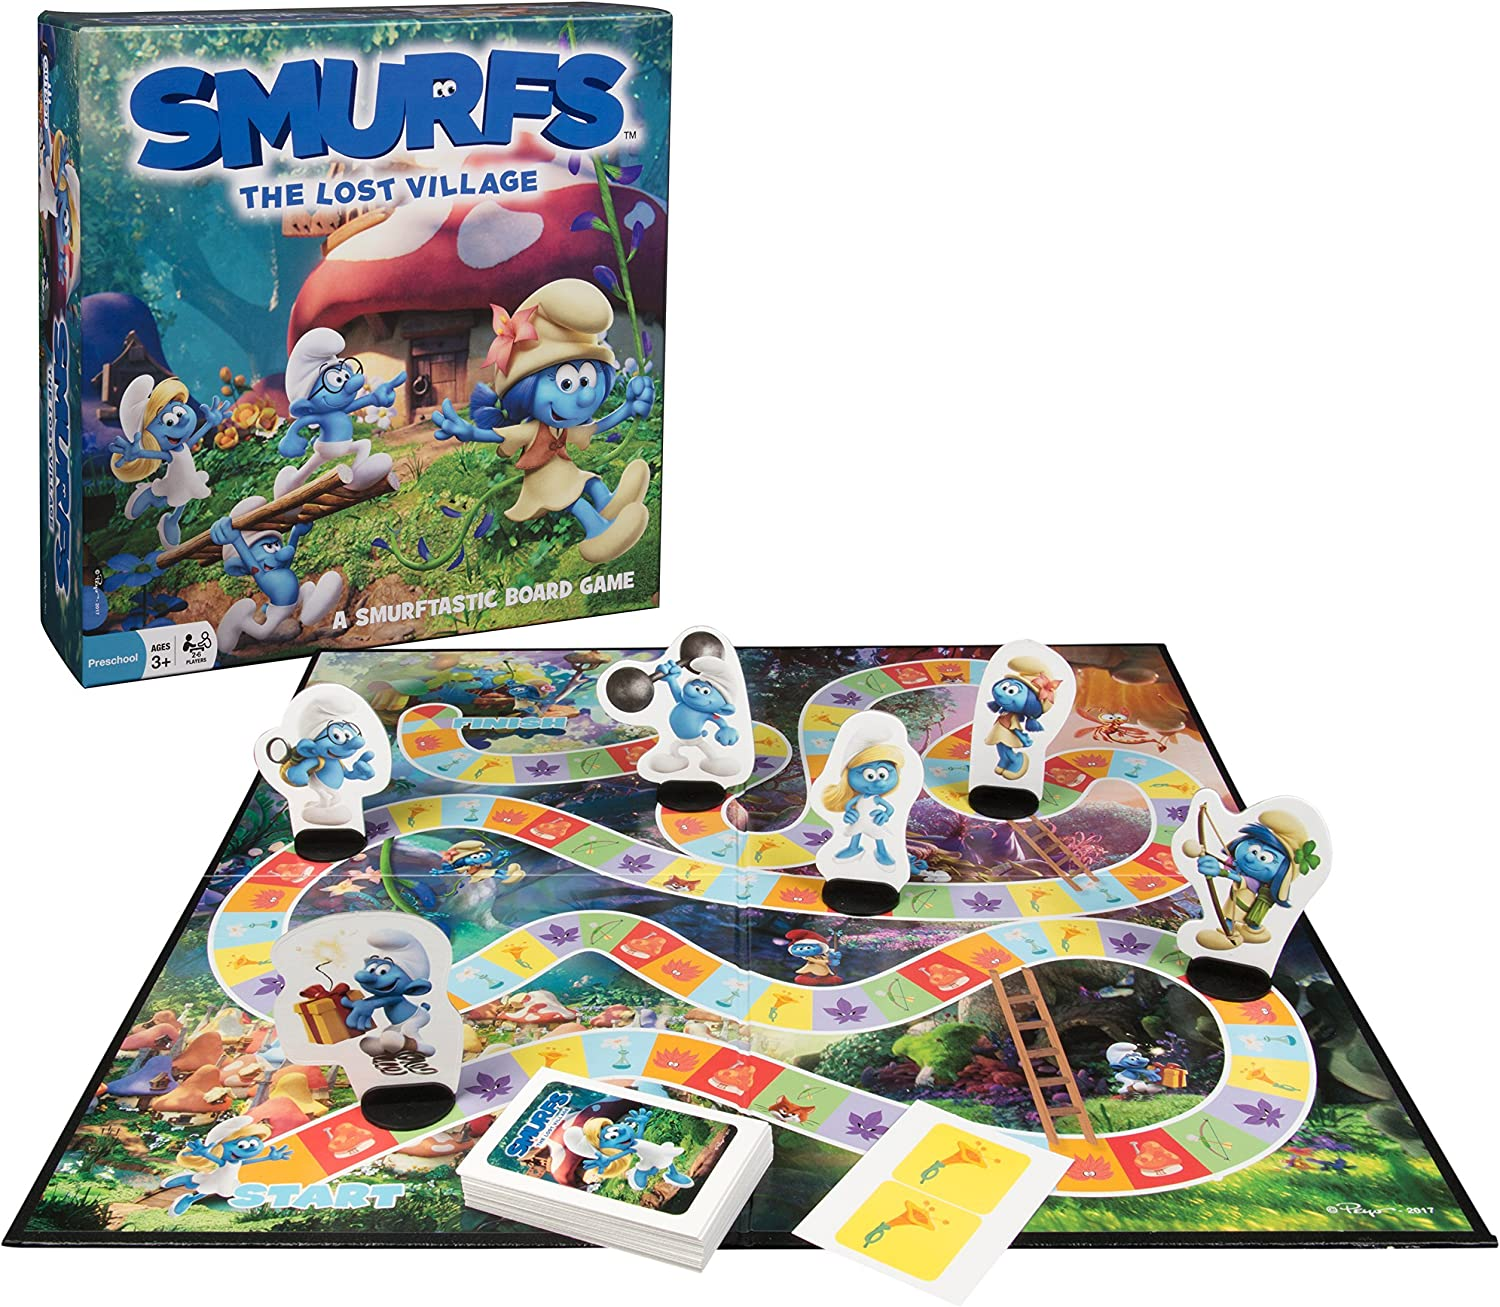 Outset Media Smurfs The Lost Village Board Game  Fun Filled Game Of Chance and Adventure For the Whole Family  No Reading Required (Ages 3+)